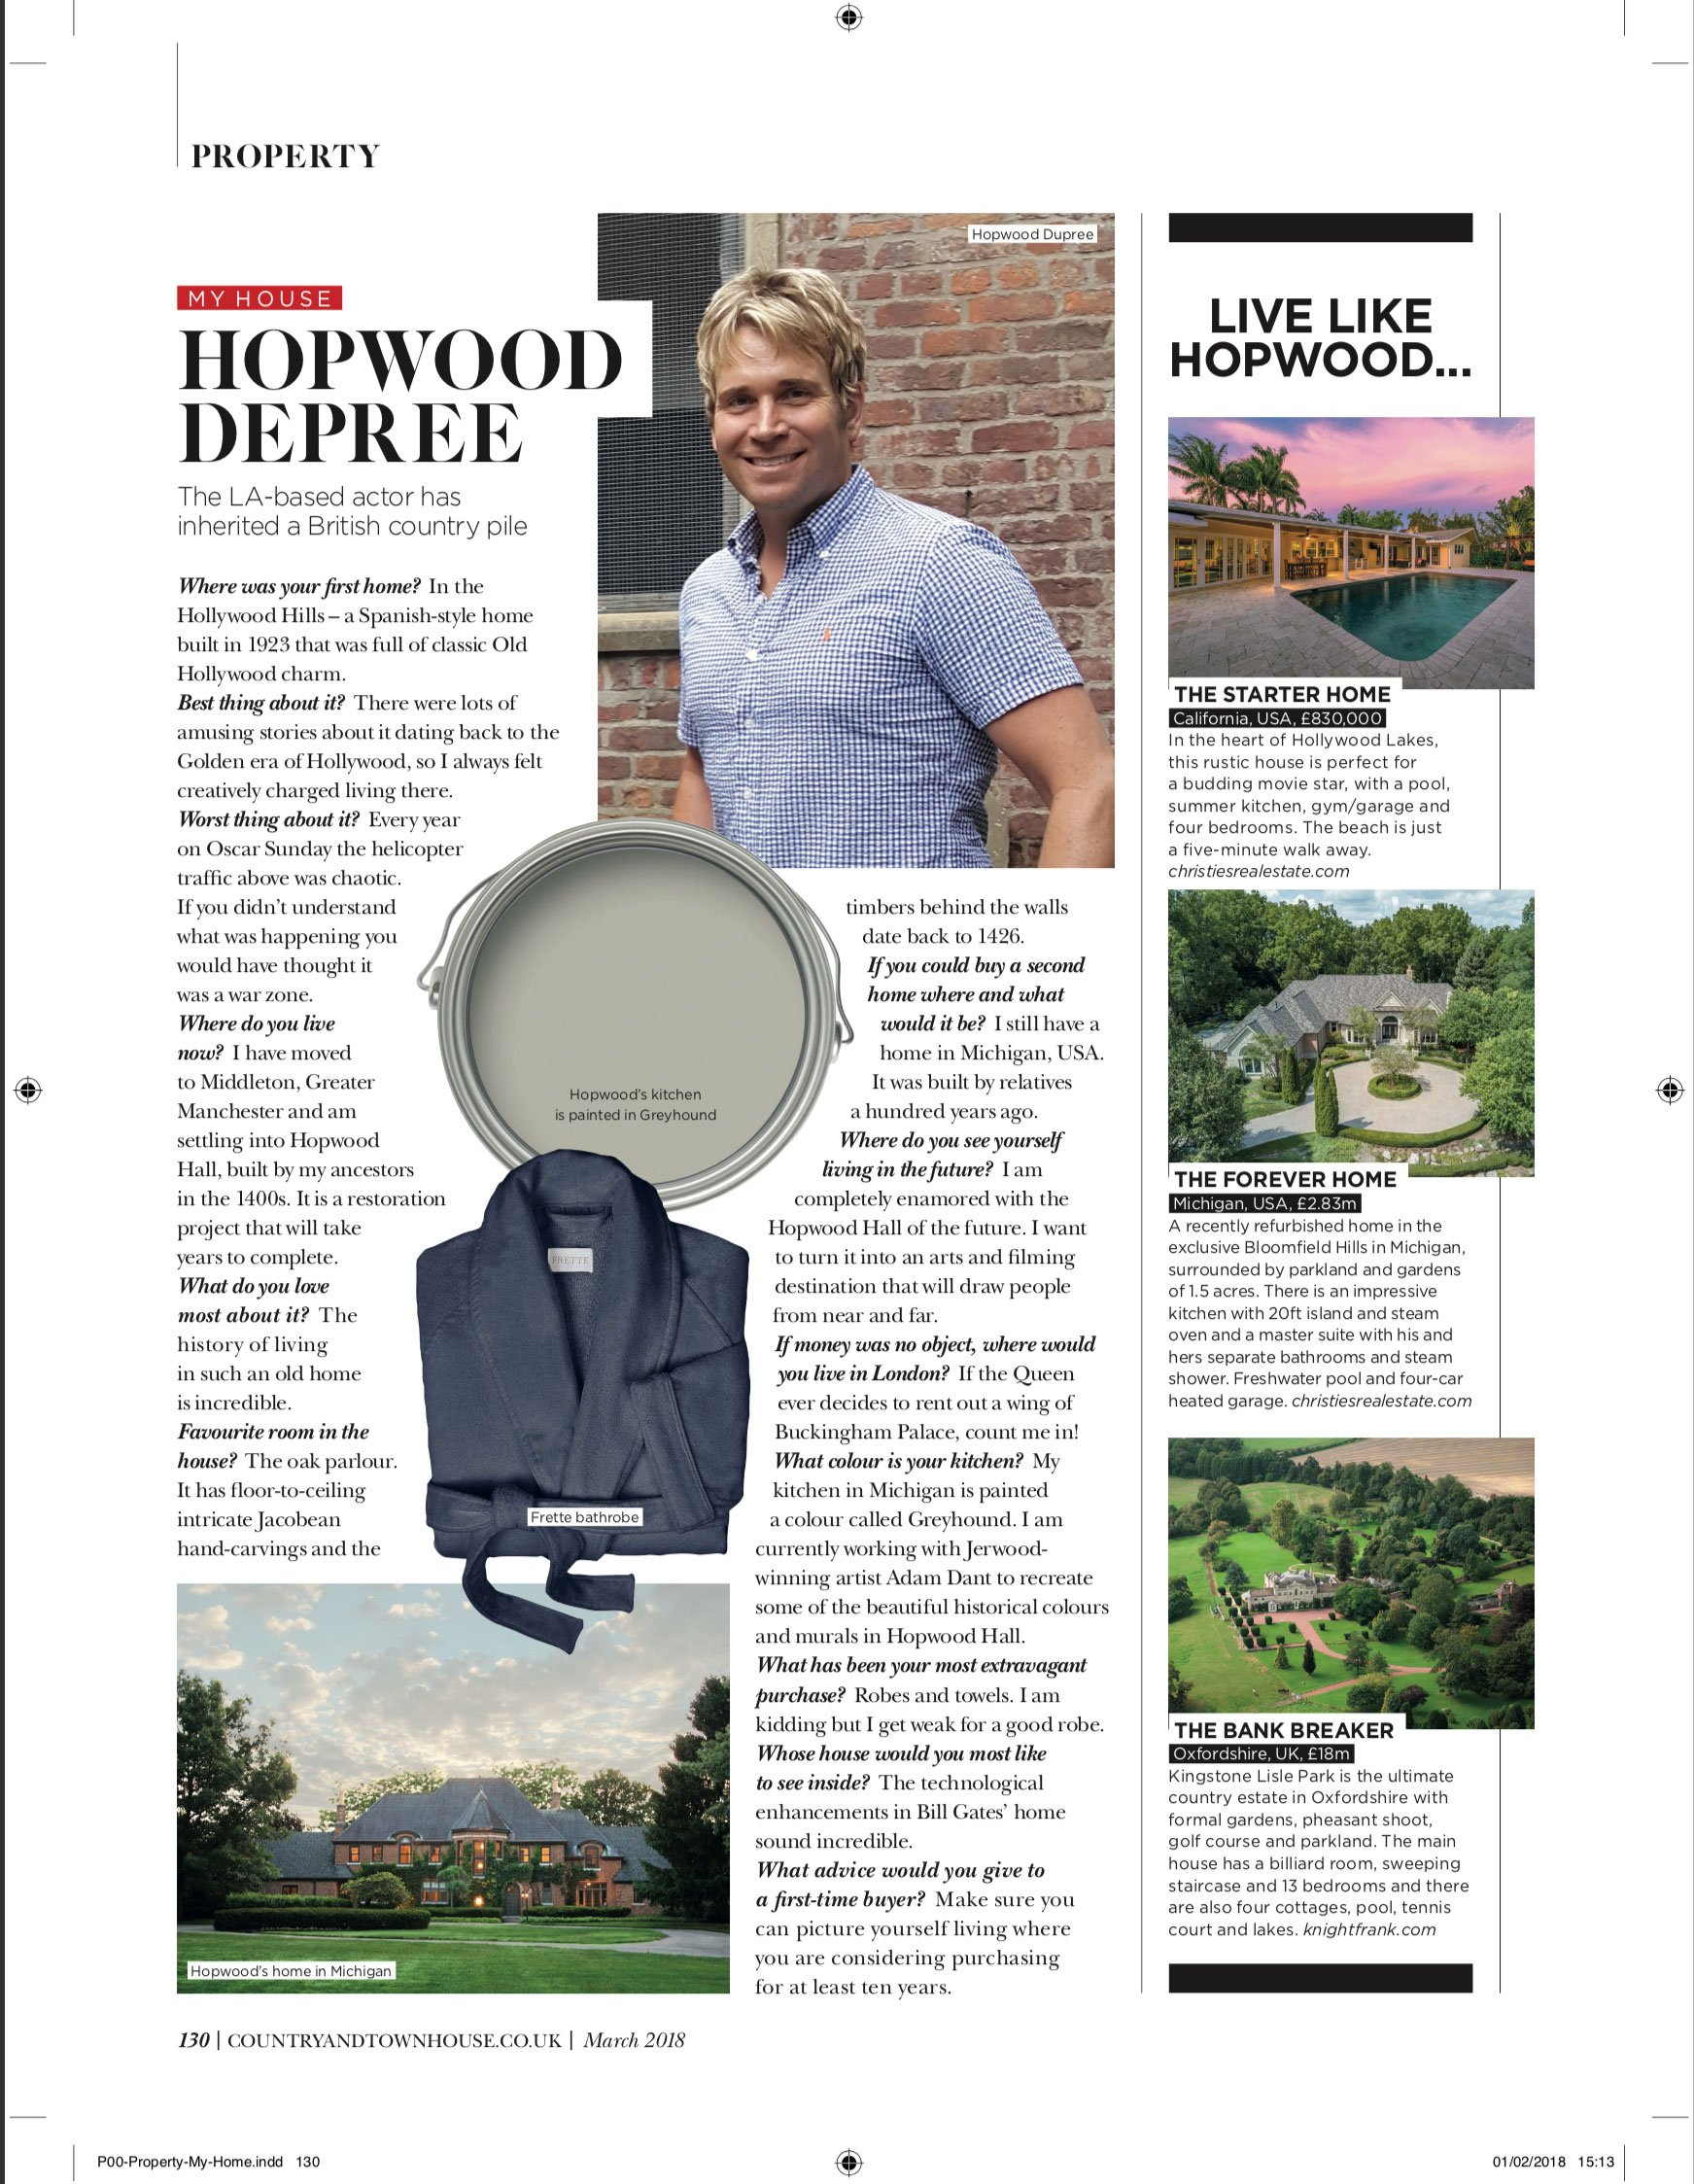 COUNTRY and TOWN HOUSE MAGAZINE: An Interview With Hopwood DePree: By Factory, Digital Agency In Manchester